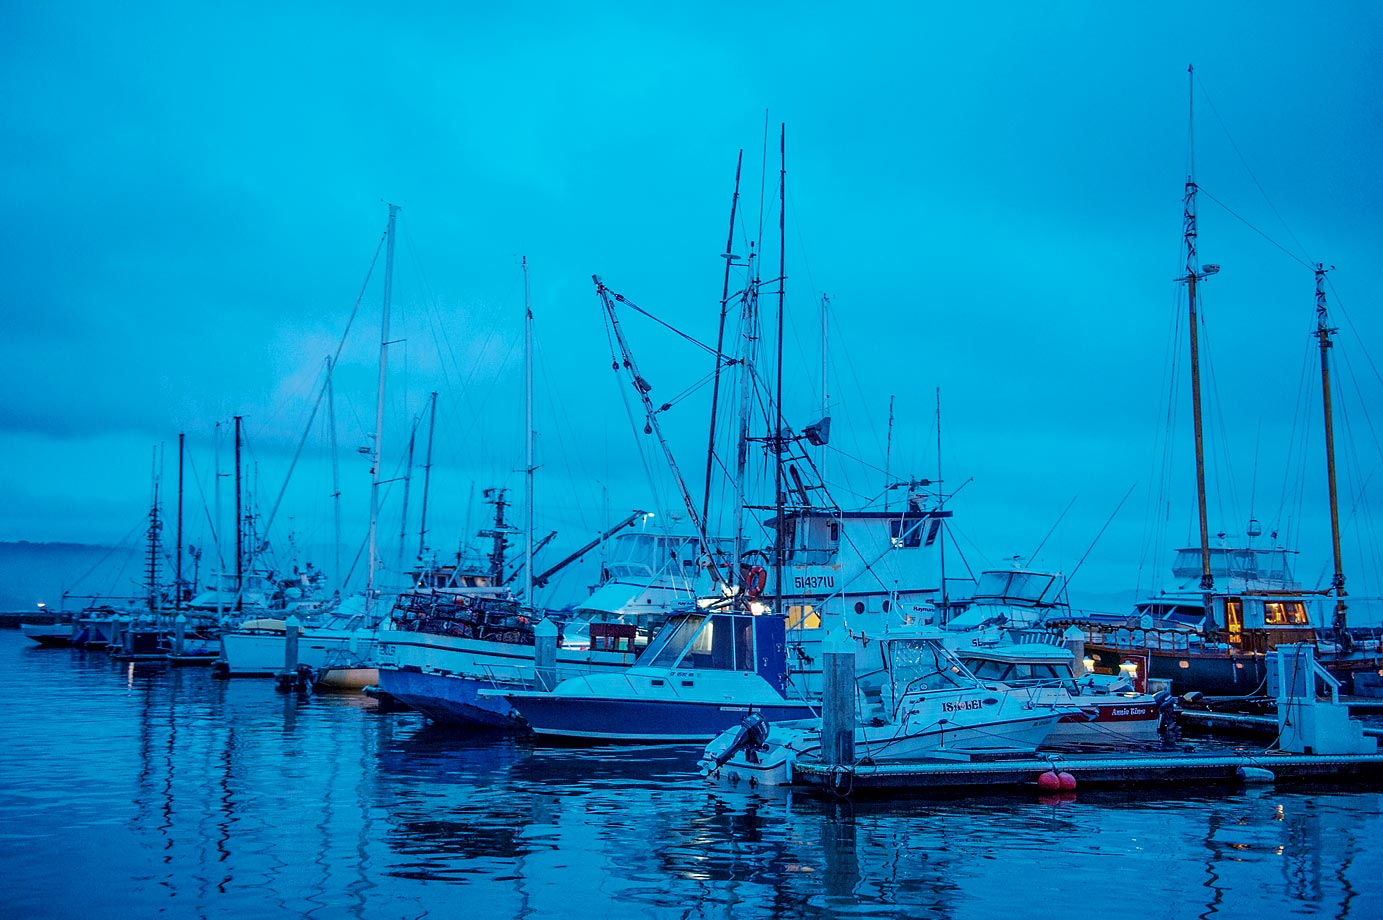 Pillar Point Harbor, the departure point to get out to Mavericks Surf break.